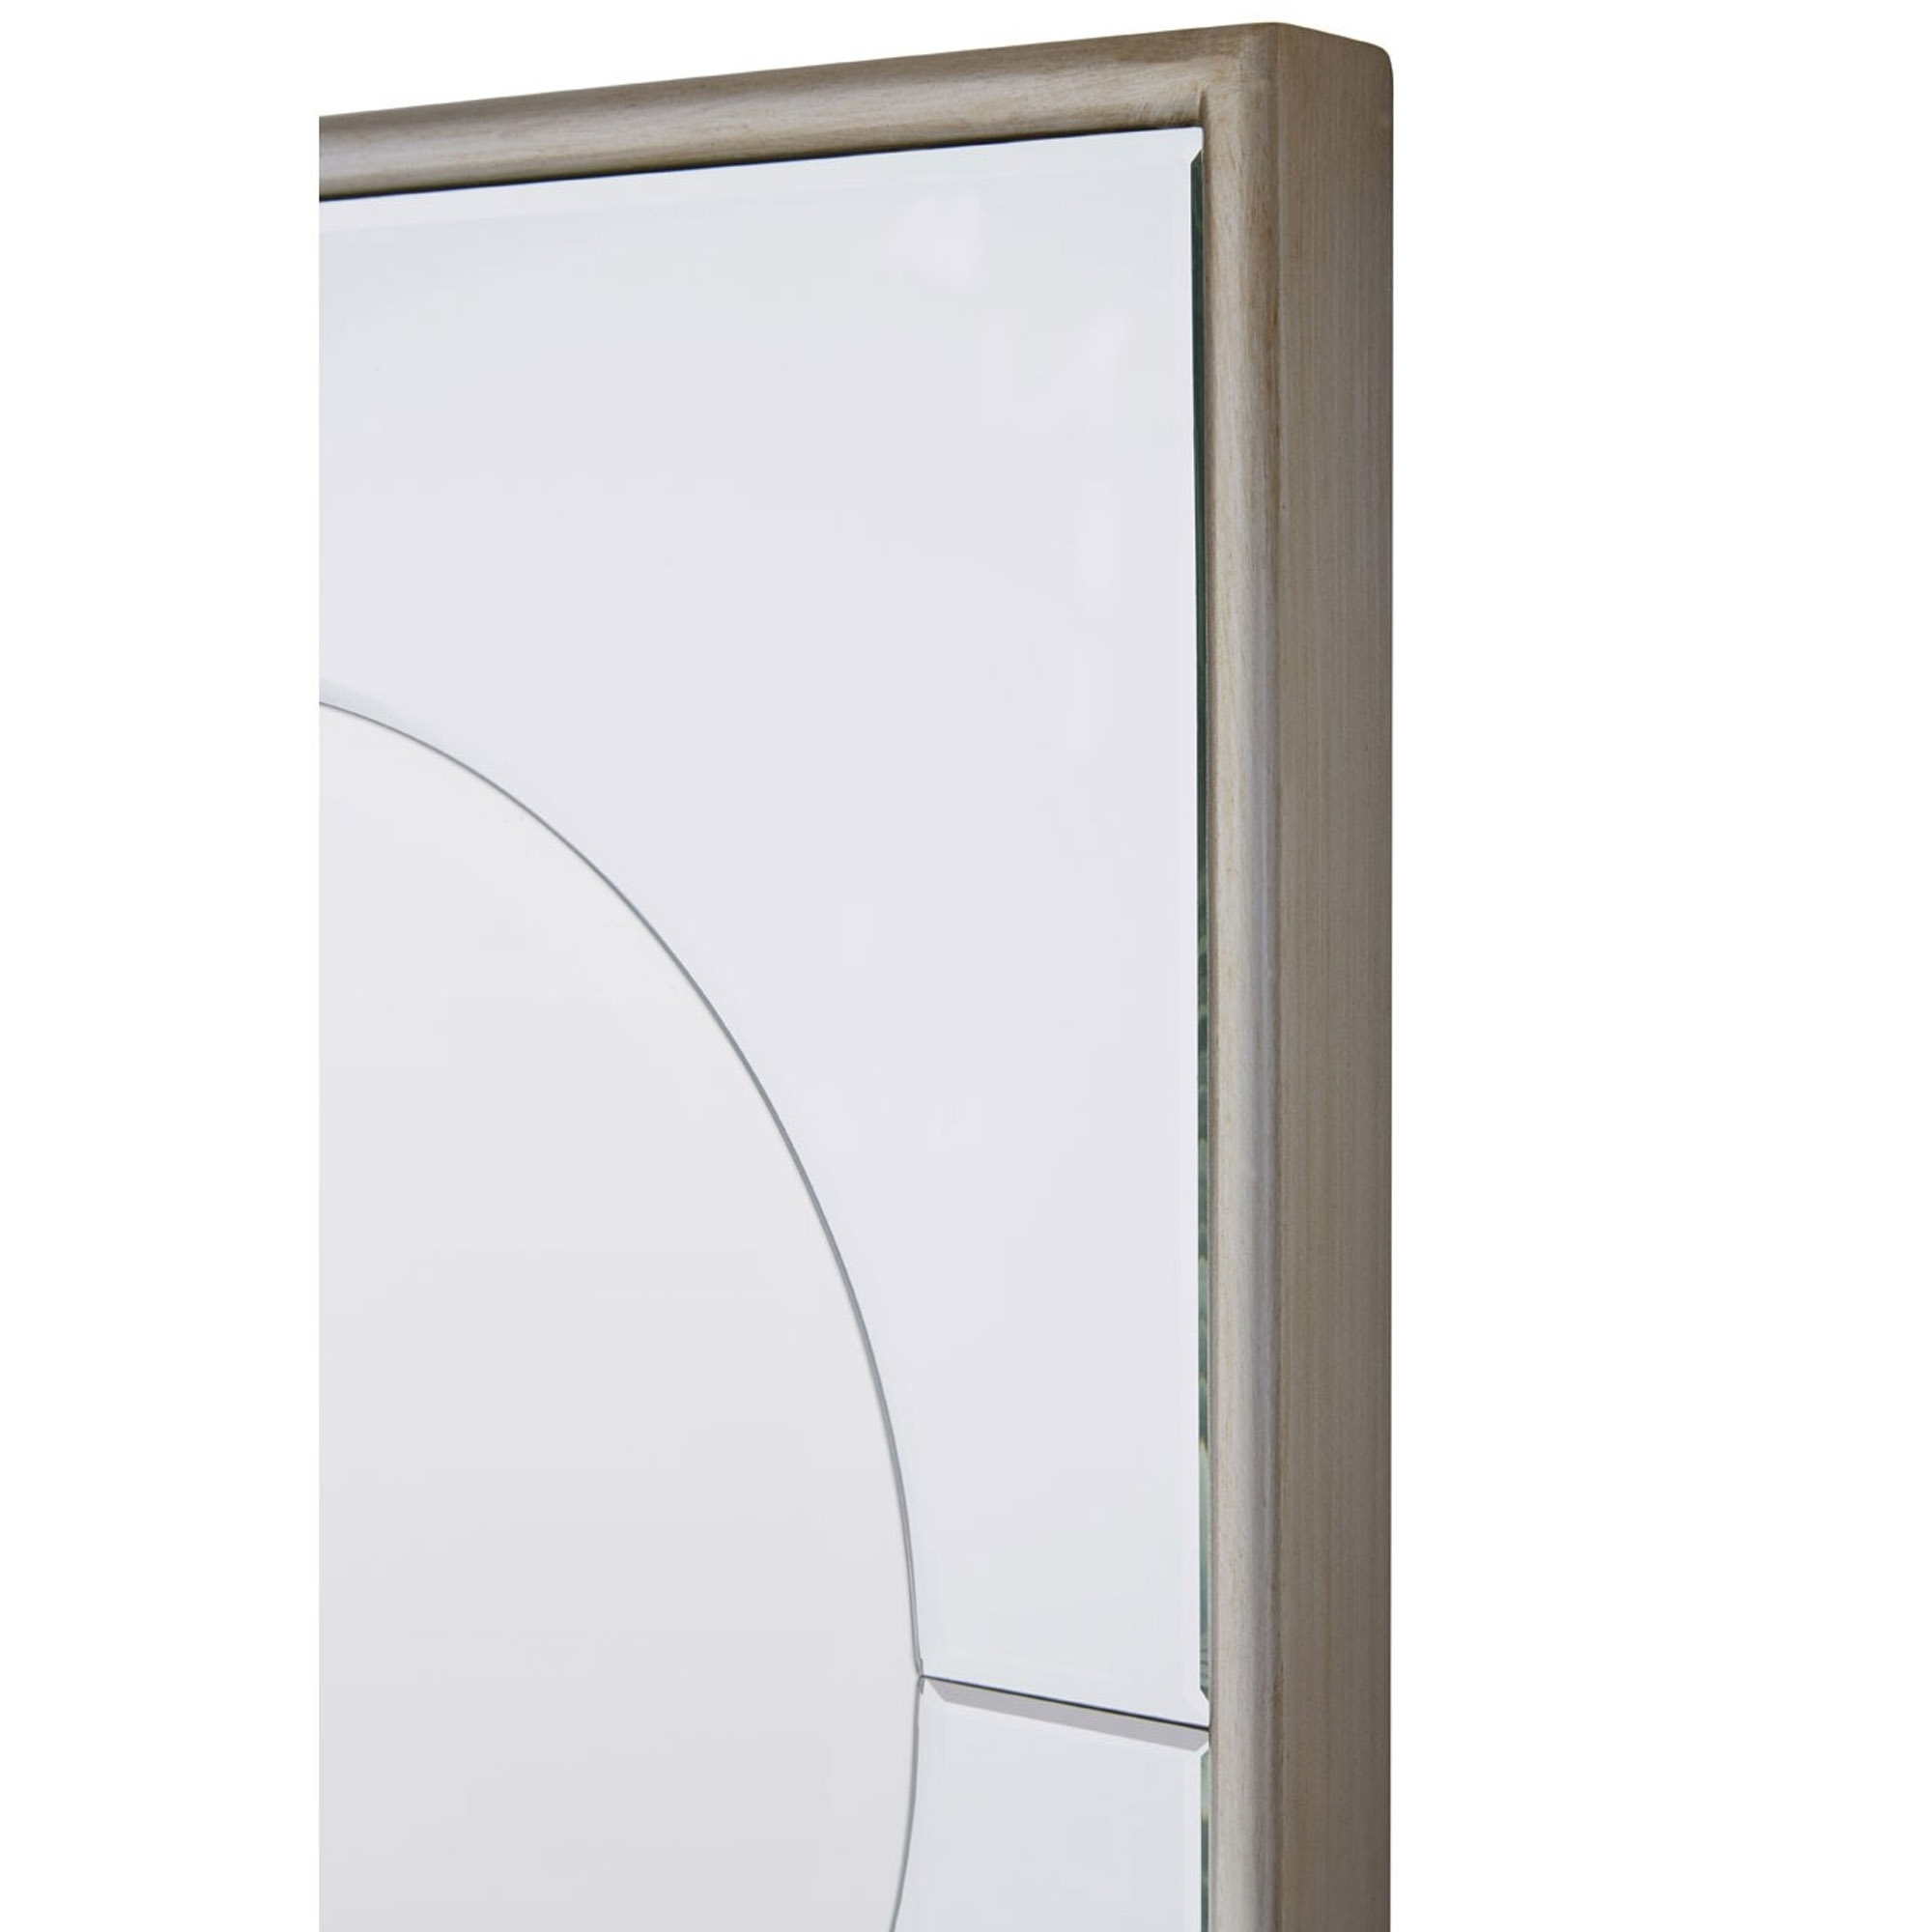 2019 Modern Rectangle Wall Mirrors Intended For Modern Rectangular Wall Mirror (View 13 of 20)